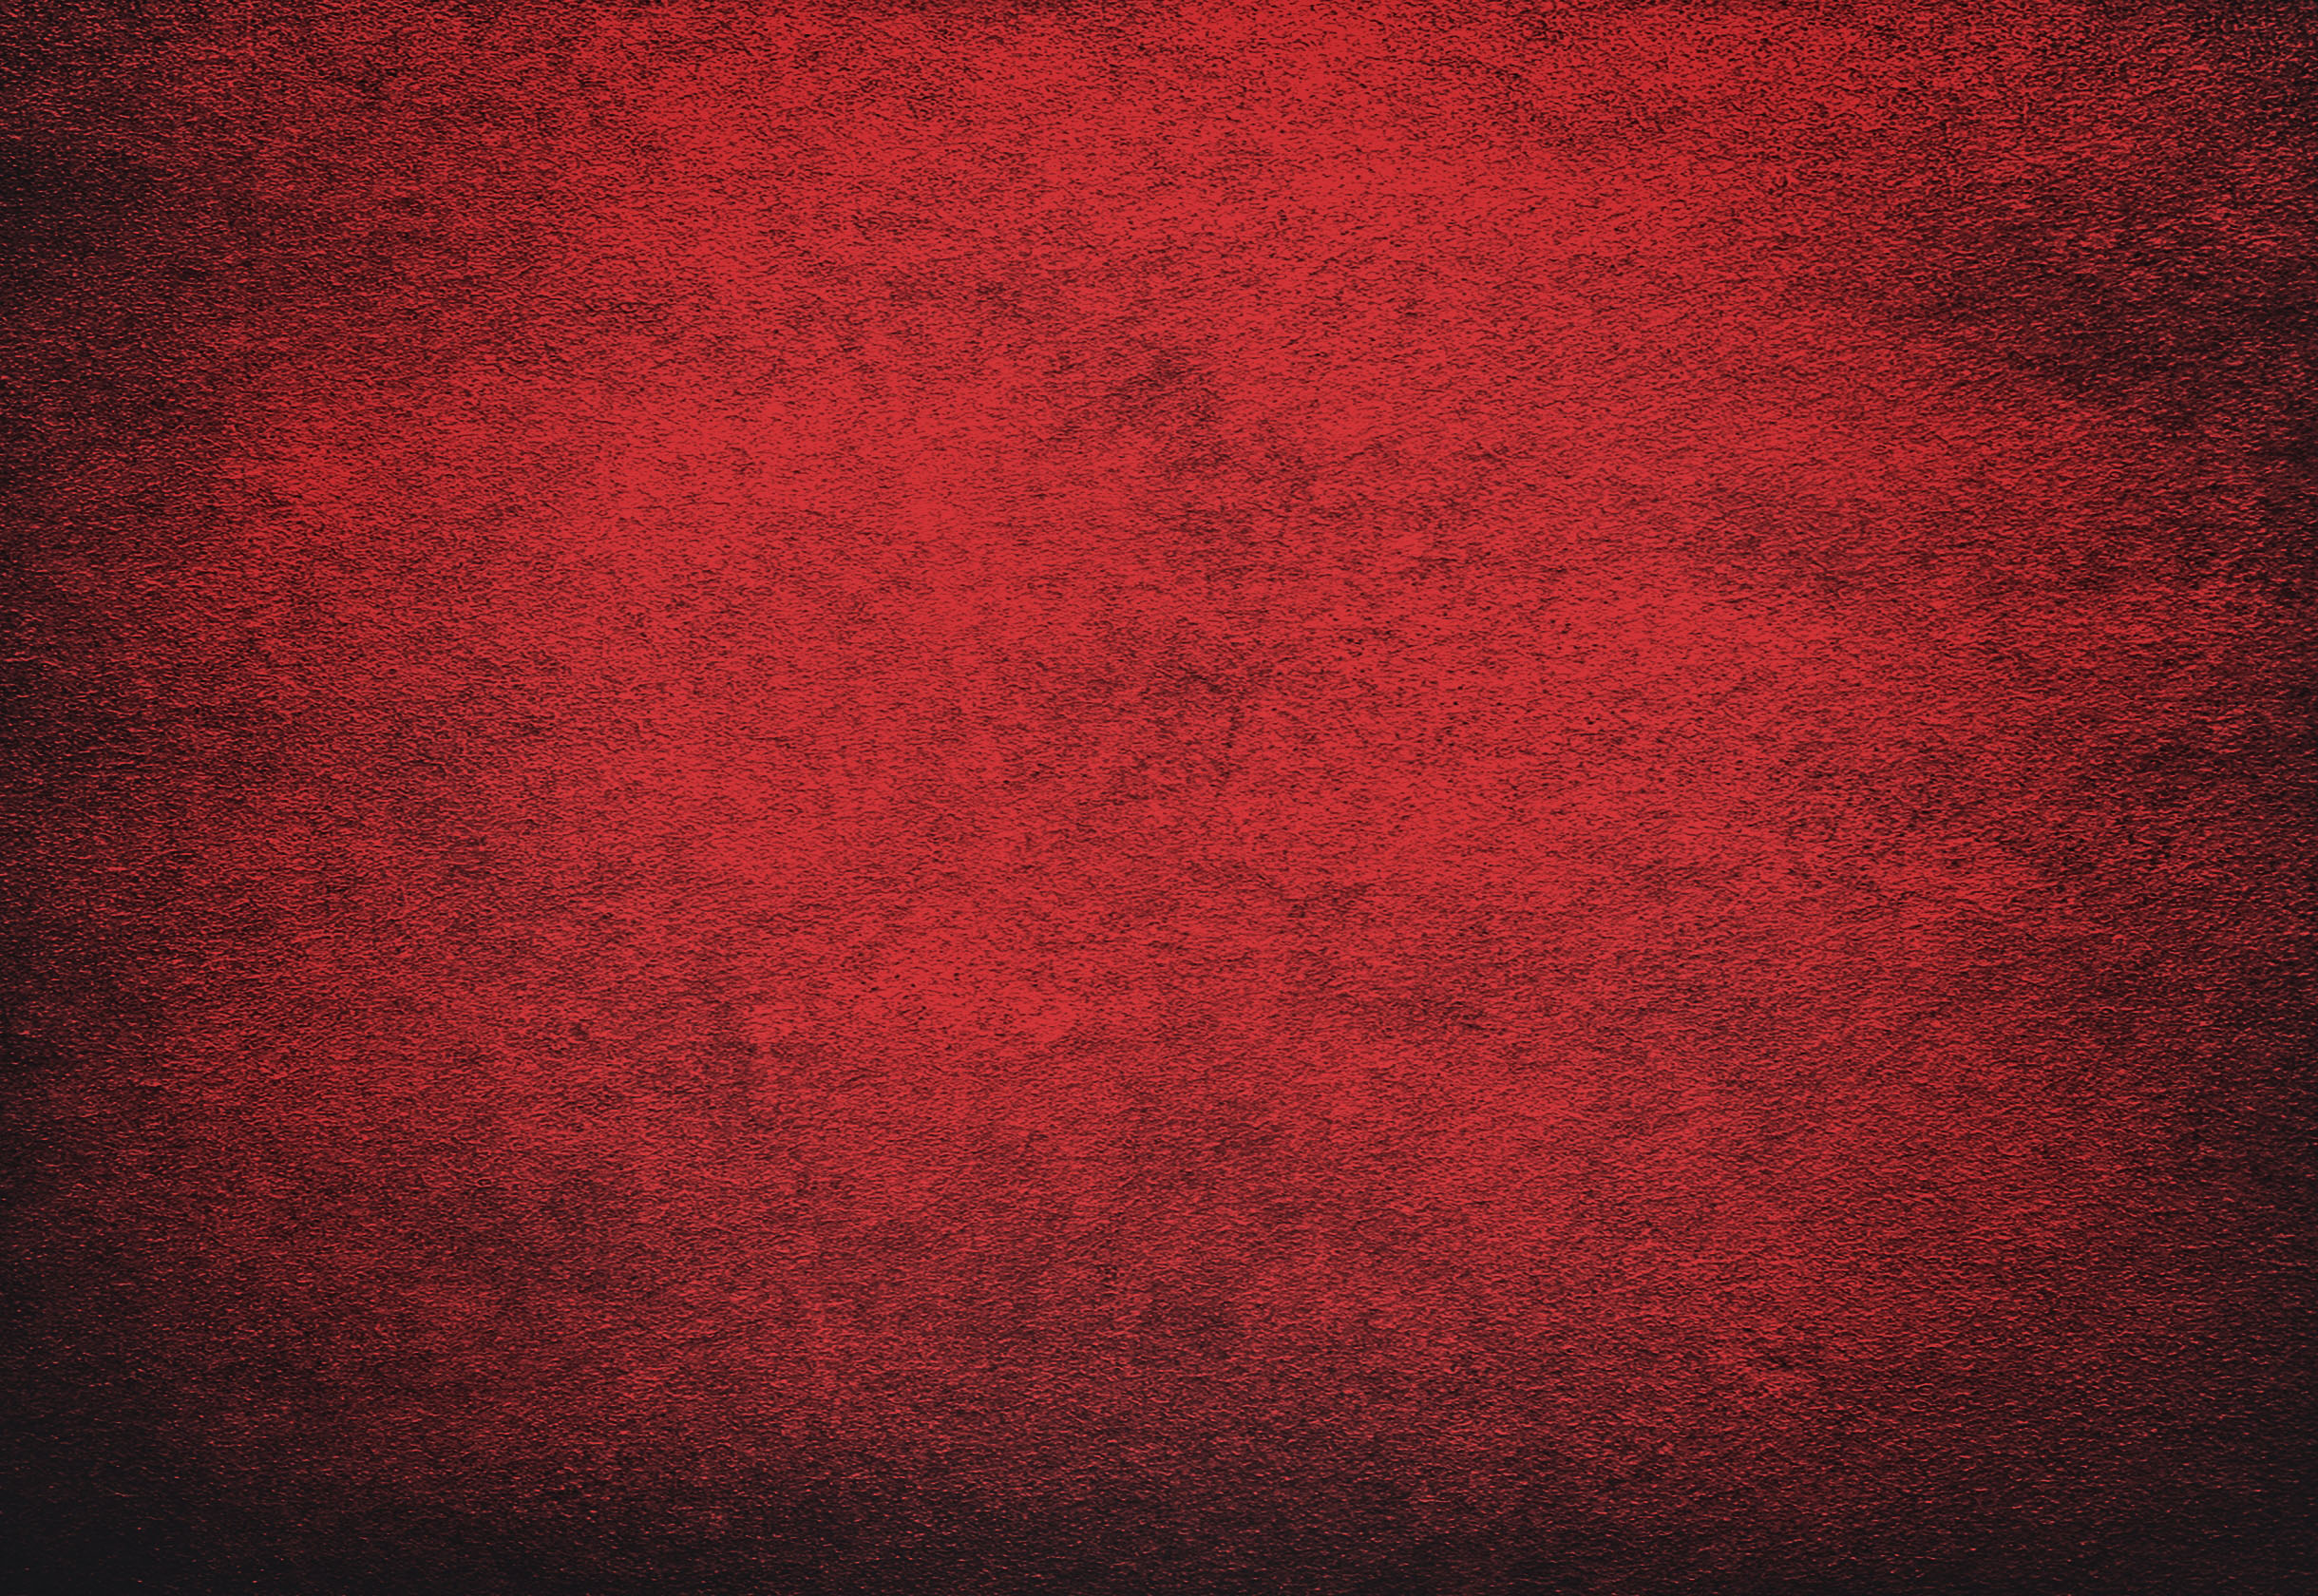 Red rough texture background, Sandstone, Solid, Smooth, Sign, HQ Photo